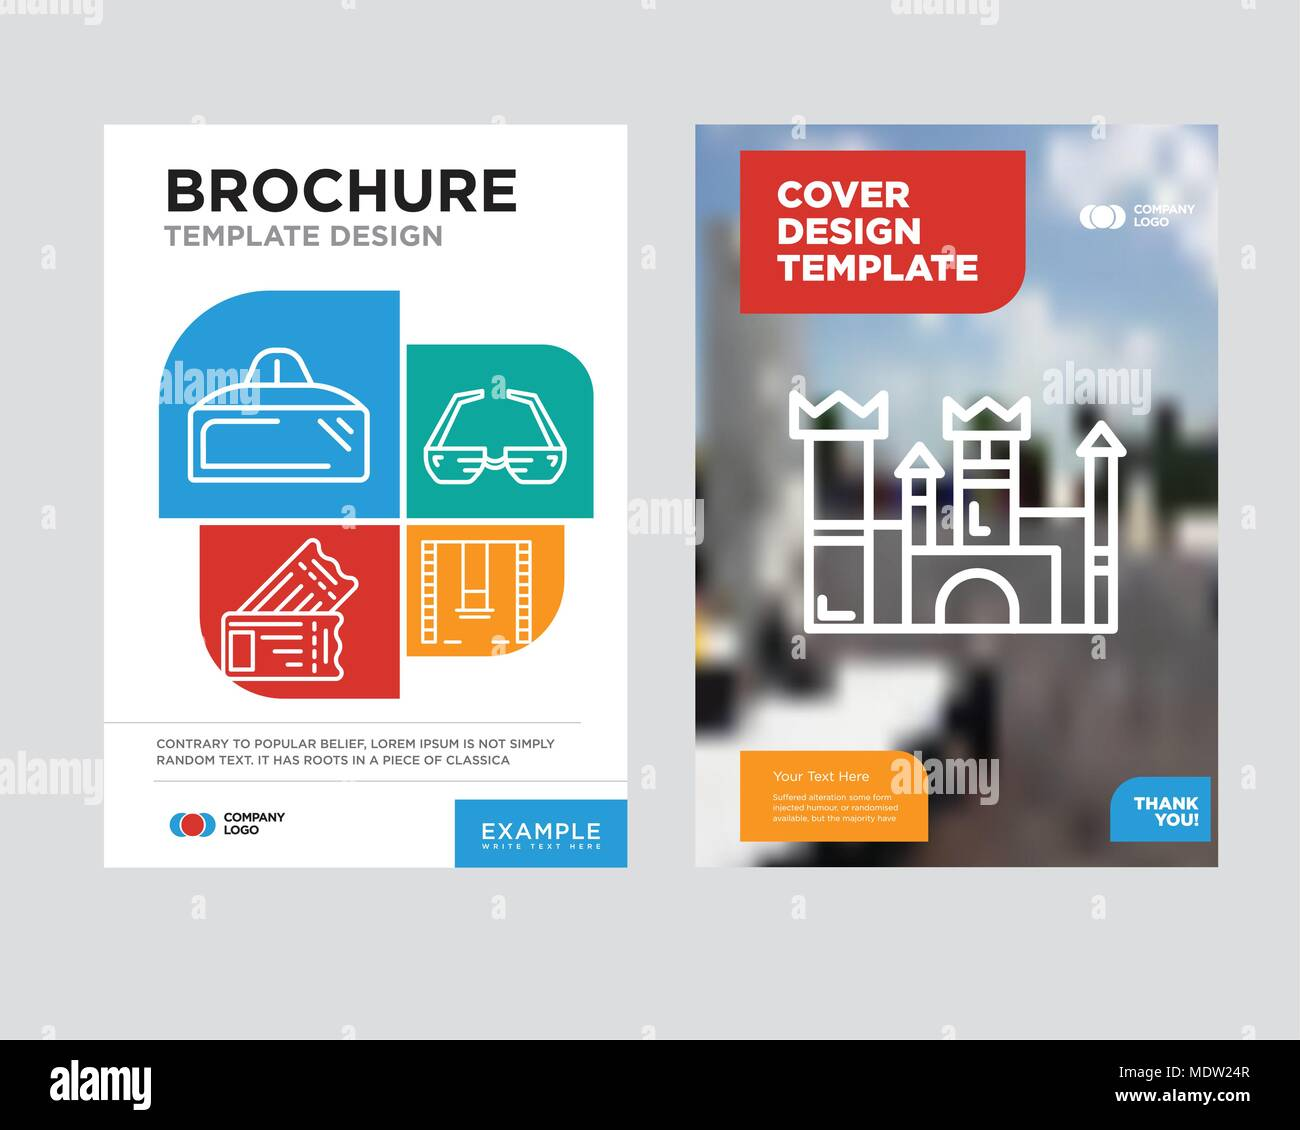 Castle Brochure Flyer Design Template With Abstract Photo Background